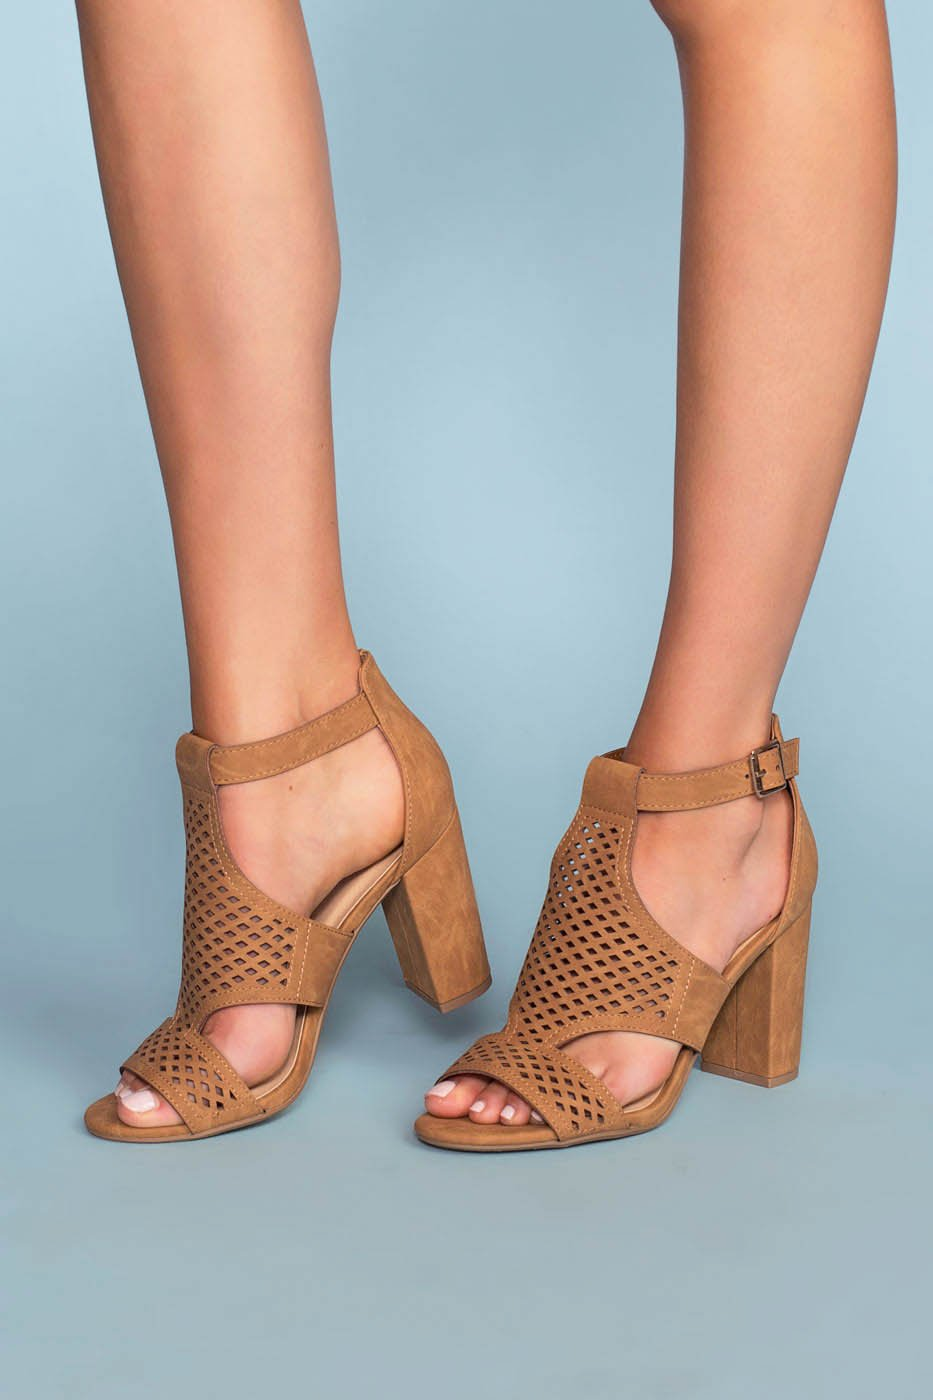 8f761d3de42 ... Shoes - Belfor Block Heel Sandals - Tan ...